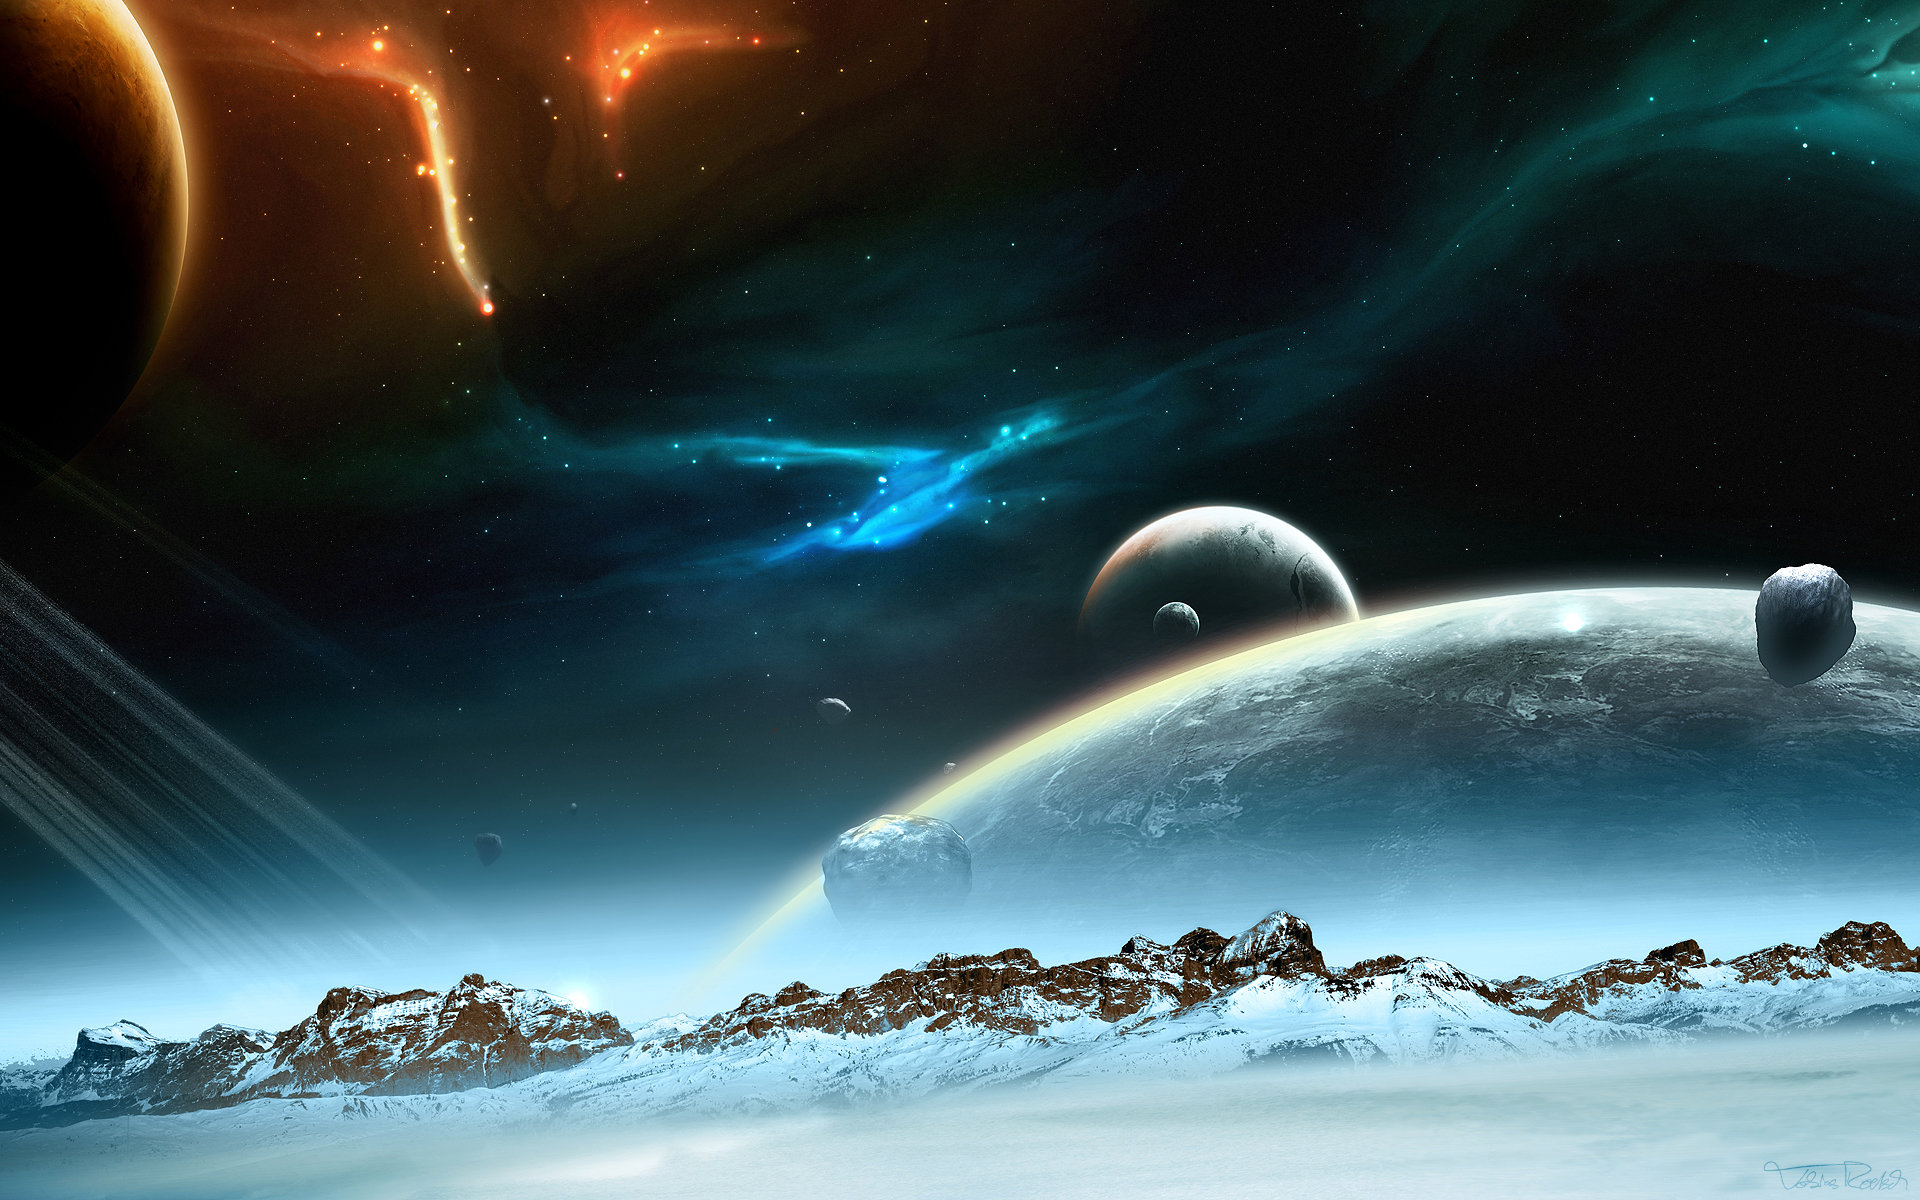 Download hd 1920x1200 Planet Rise PC background ID:193665 for free